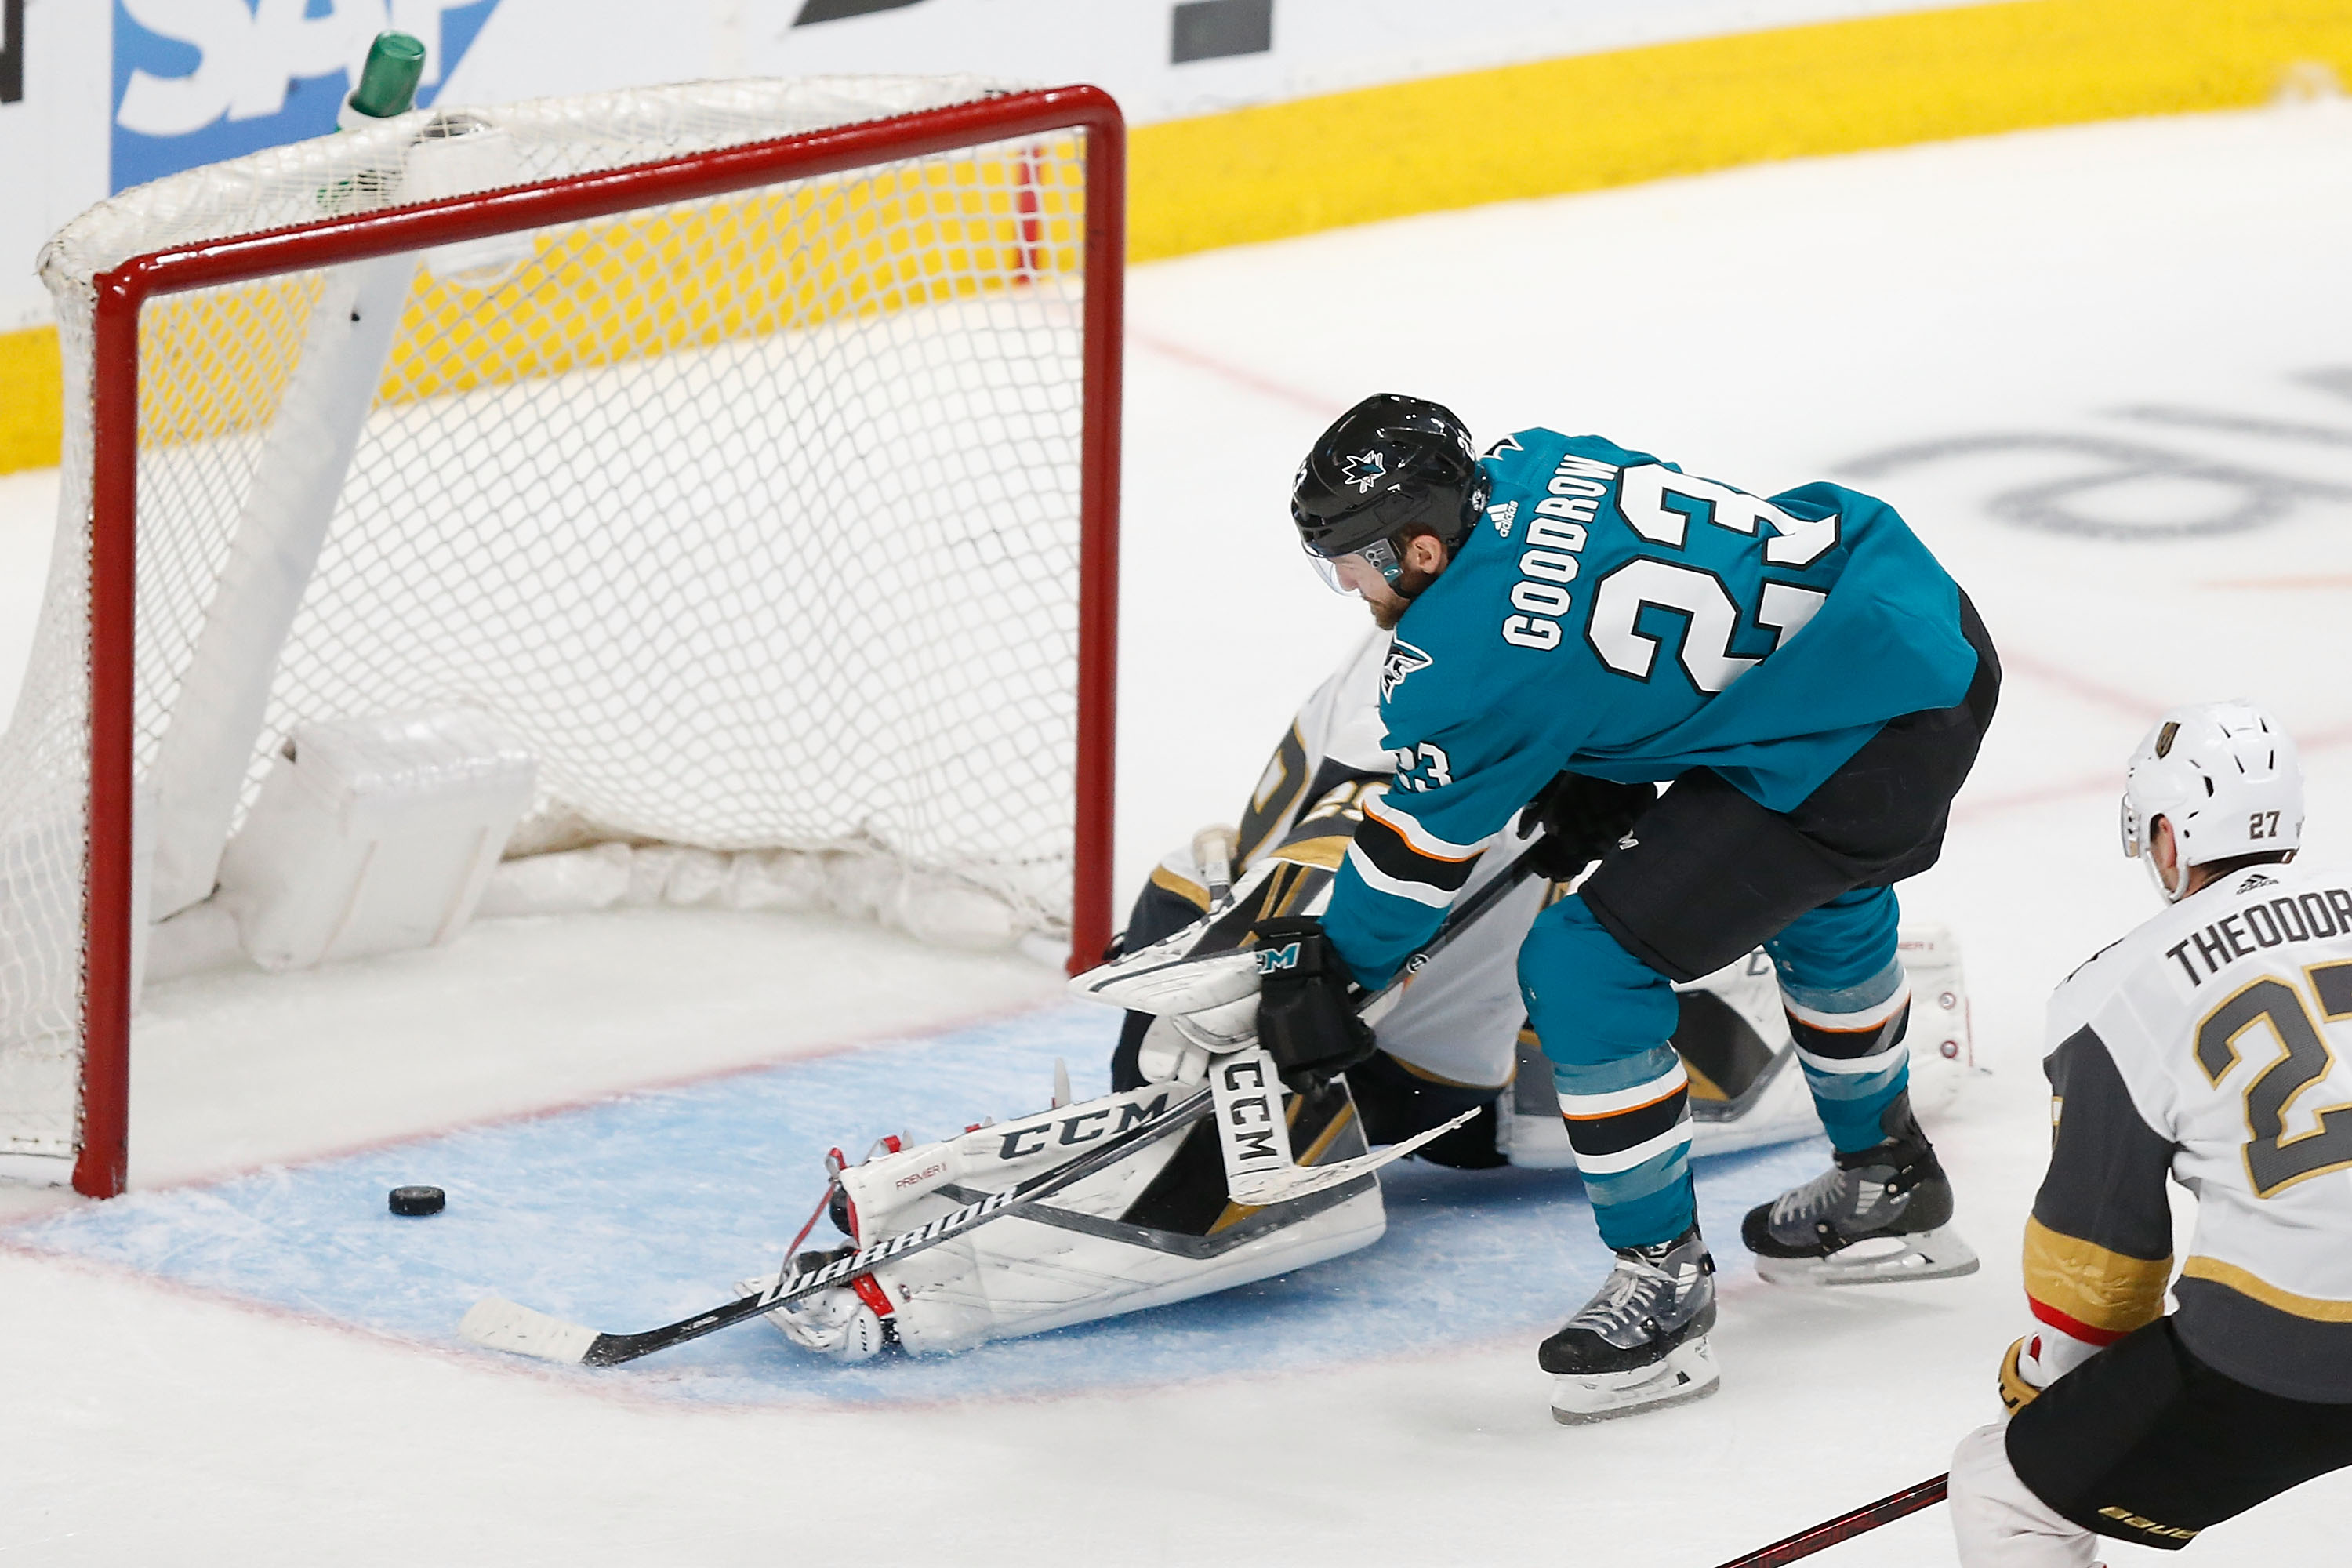 SAN JOSE, CA - APRIL 23: Barclay Goodrow of the San Jose Sharks scores a goal in overtime against Marc-Andre Fleury of the Vegas Golden Knights in Game Seven of the Western Conference First Round during the 2019 NHL Stanley Cup Playoffs at SAP Center